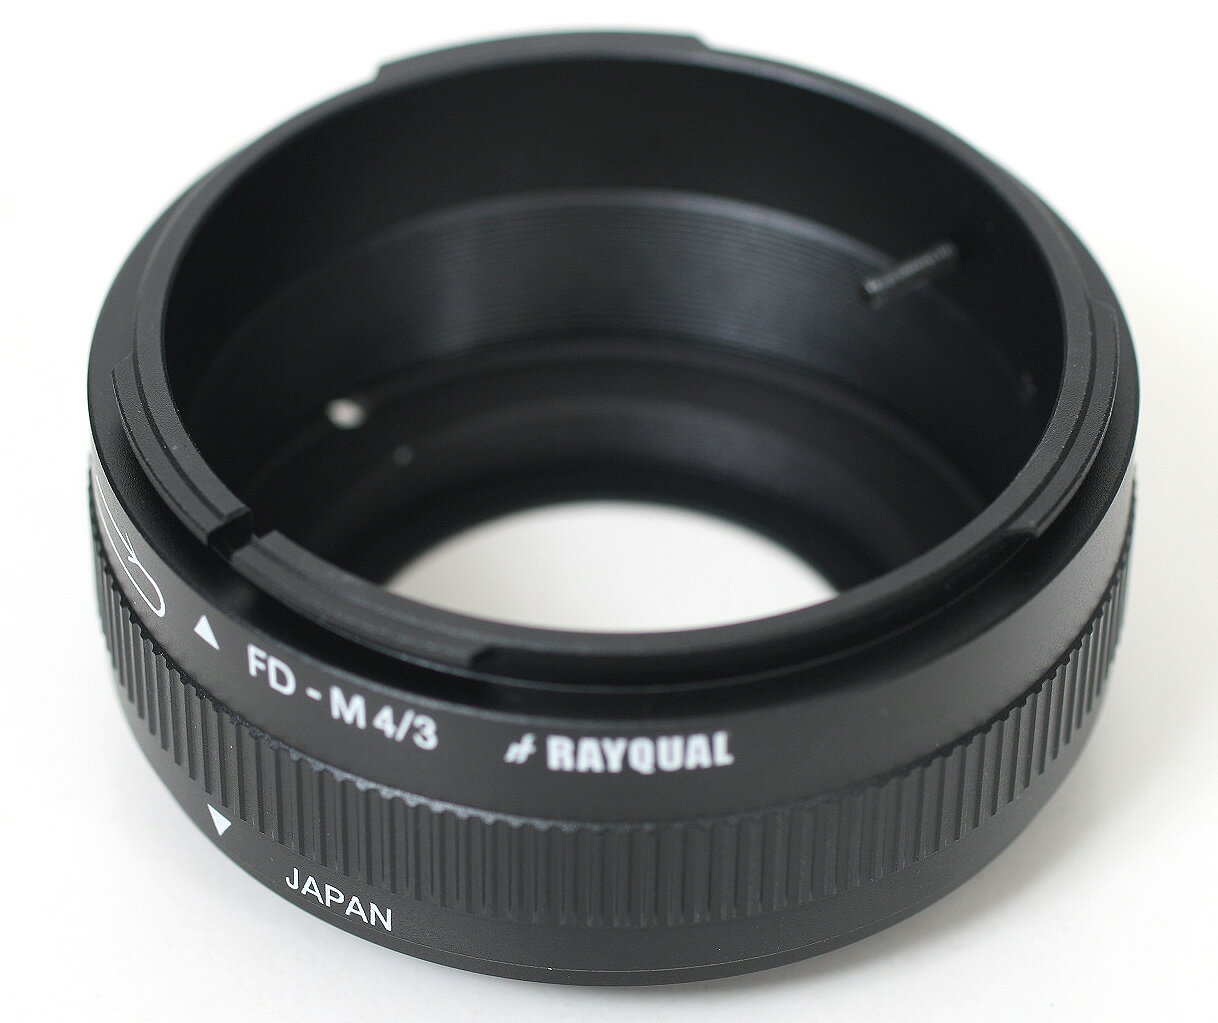 "レイコール Canon FD → micro four thirds adapter ""1 to 3 business days after shipping, fs3gm"